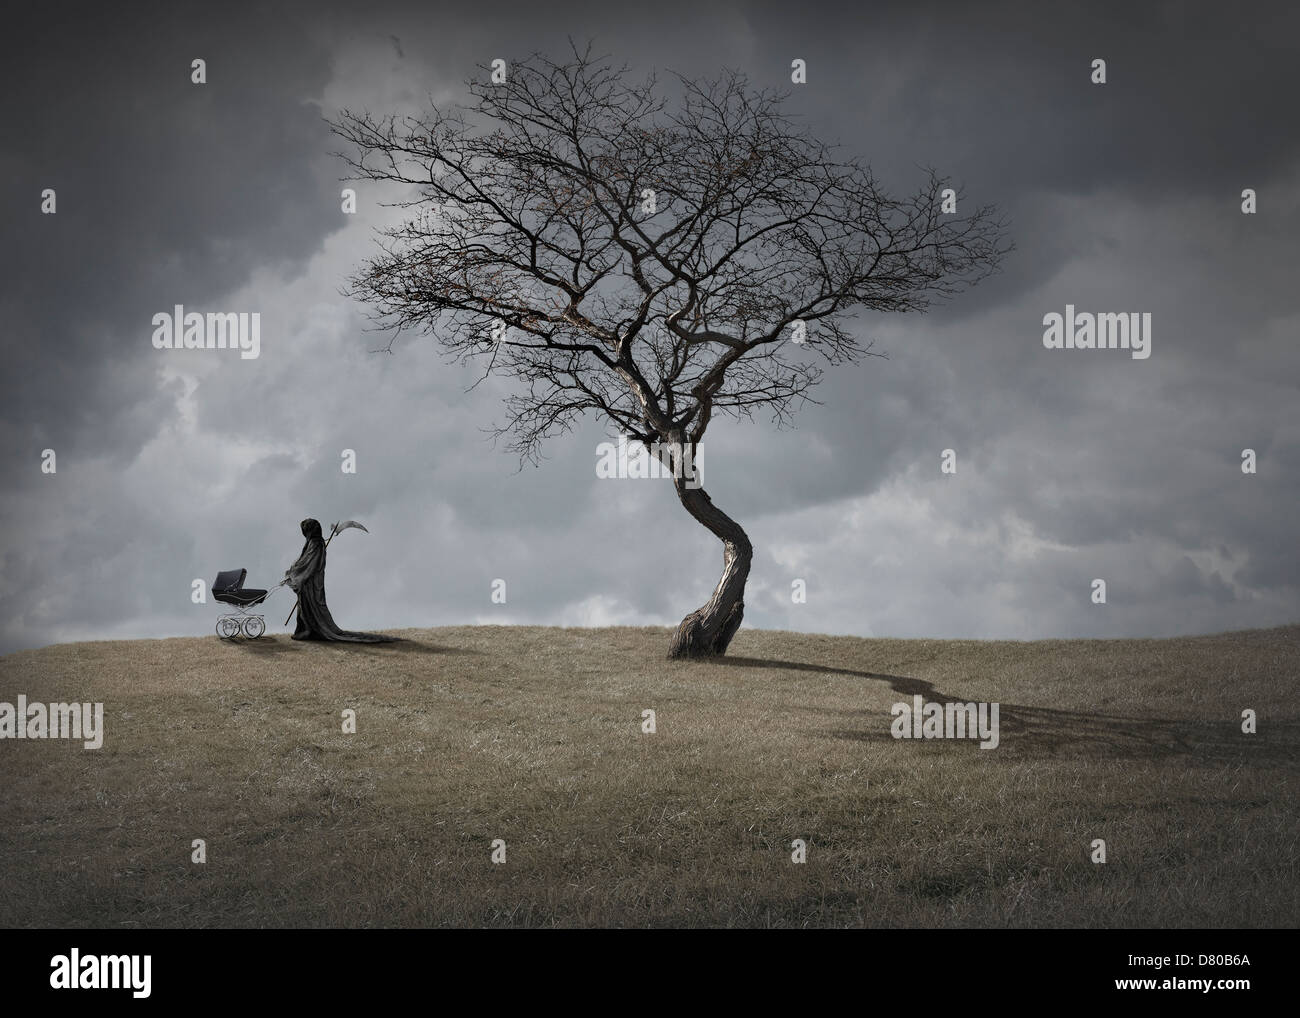 Man In Black Robes With Baby Carriage By Dead Tree Stock Photo Alamy